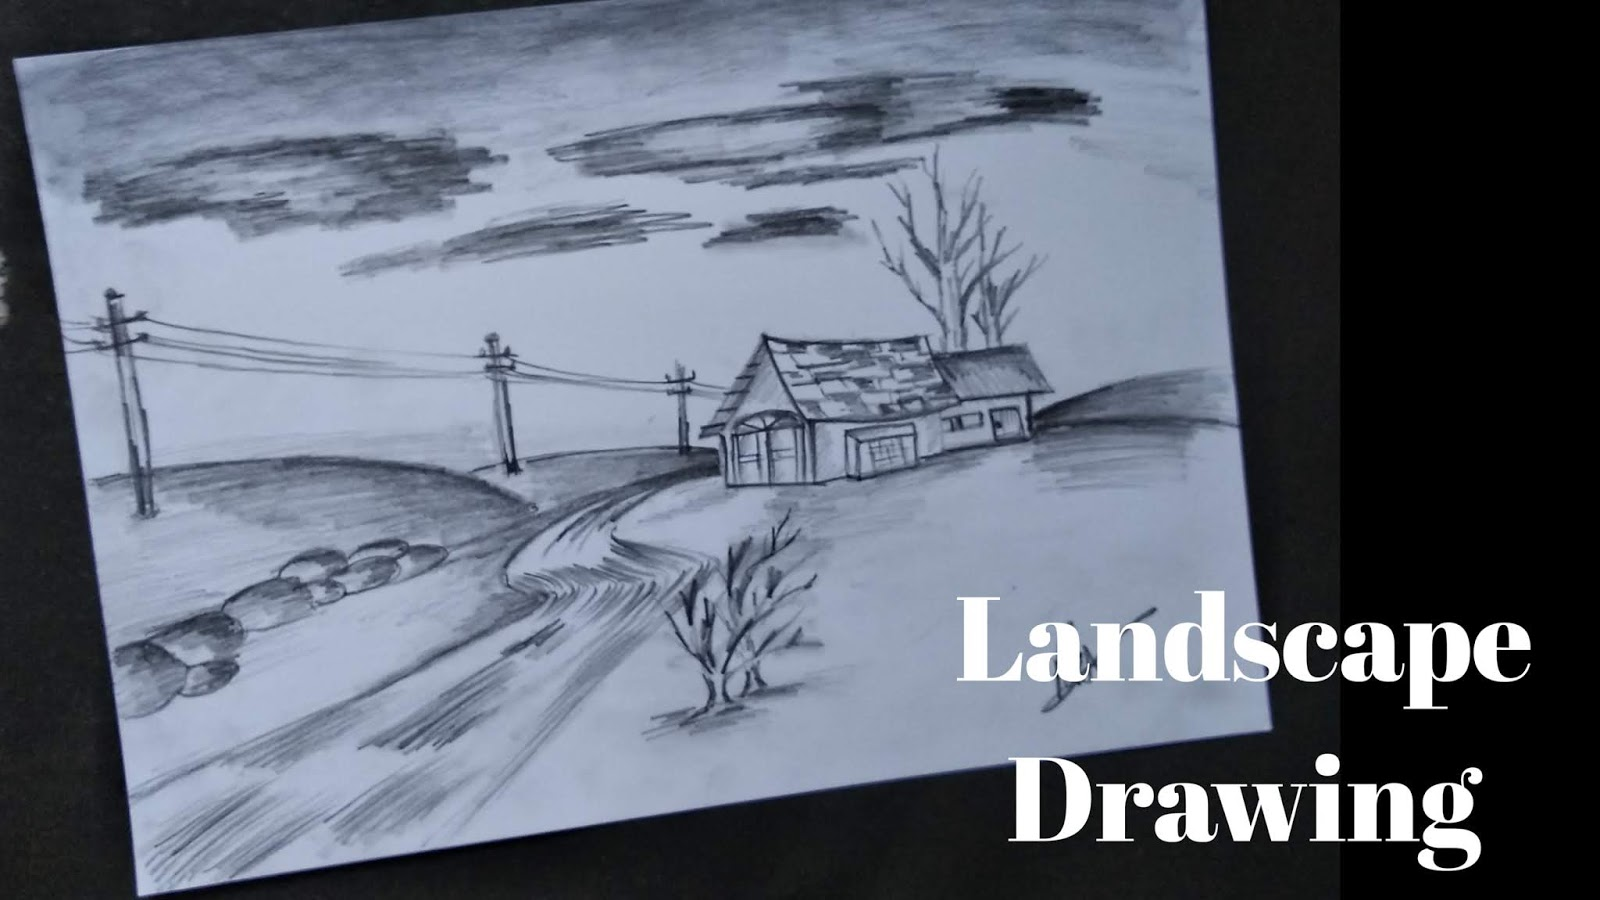 How to draw landscape drawing landscape drawing with pencil easy drawing tutorial for landscape